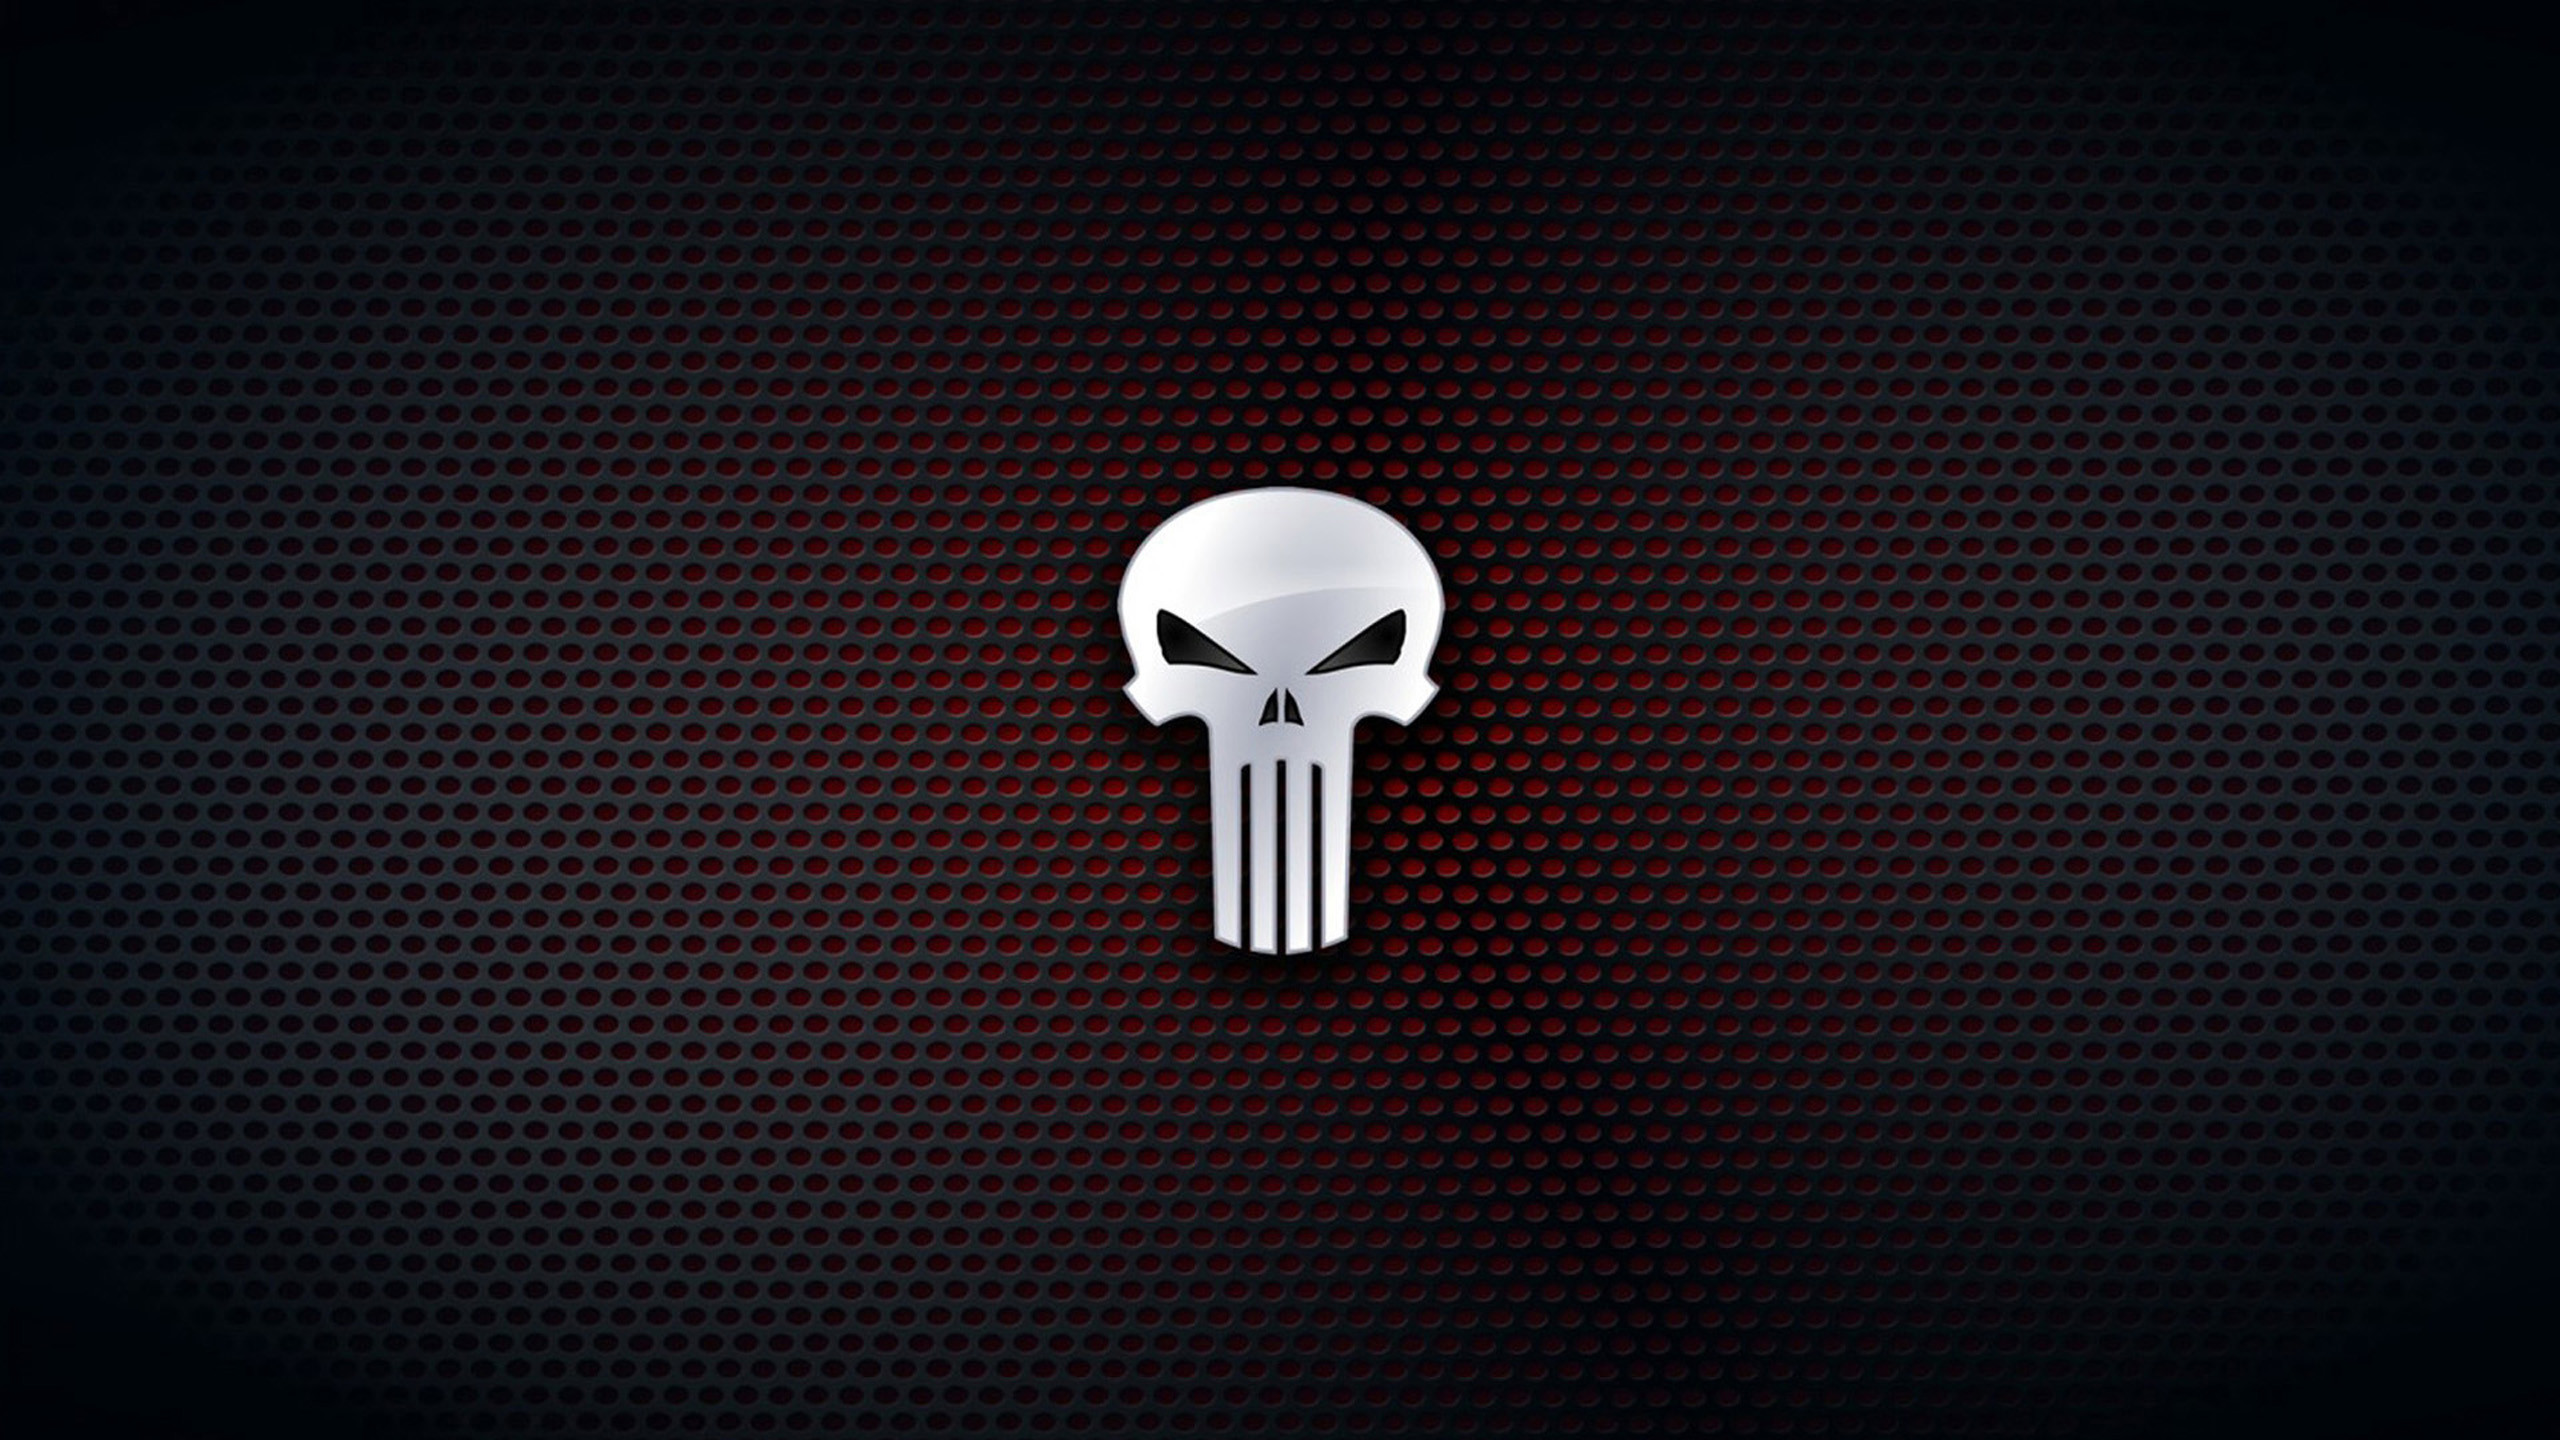 25 best ideas about <b>Punisher</b> on Pinterest | The